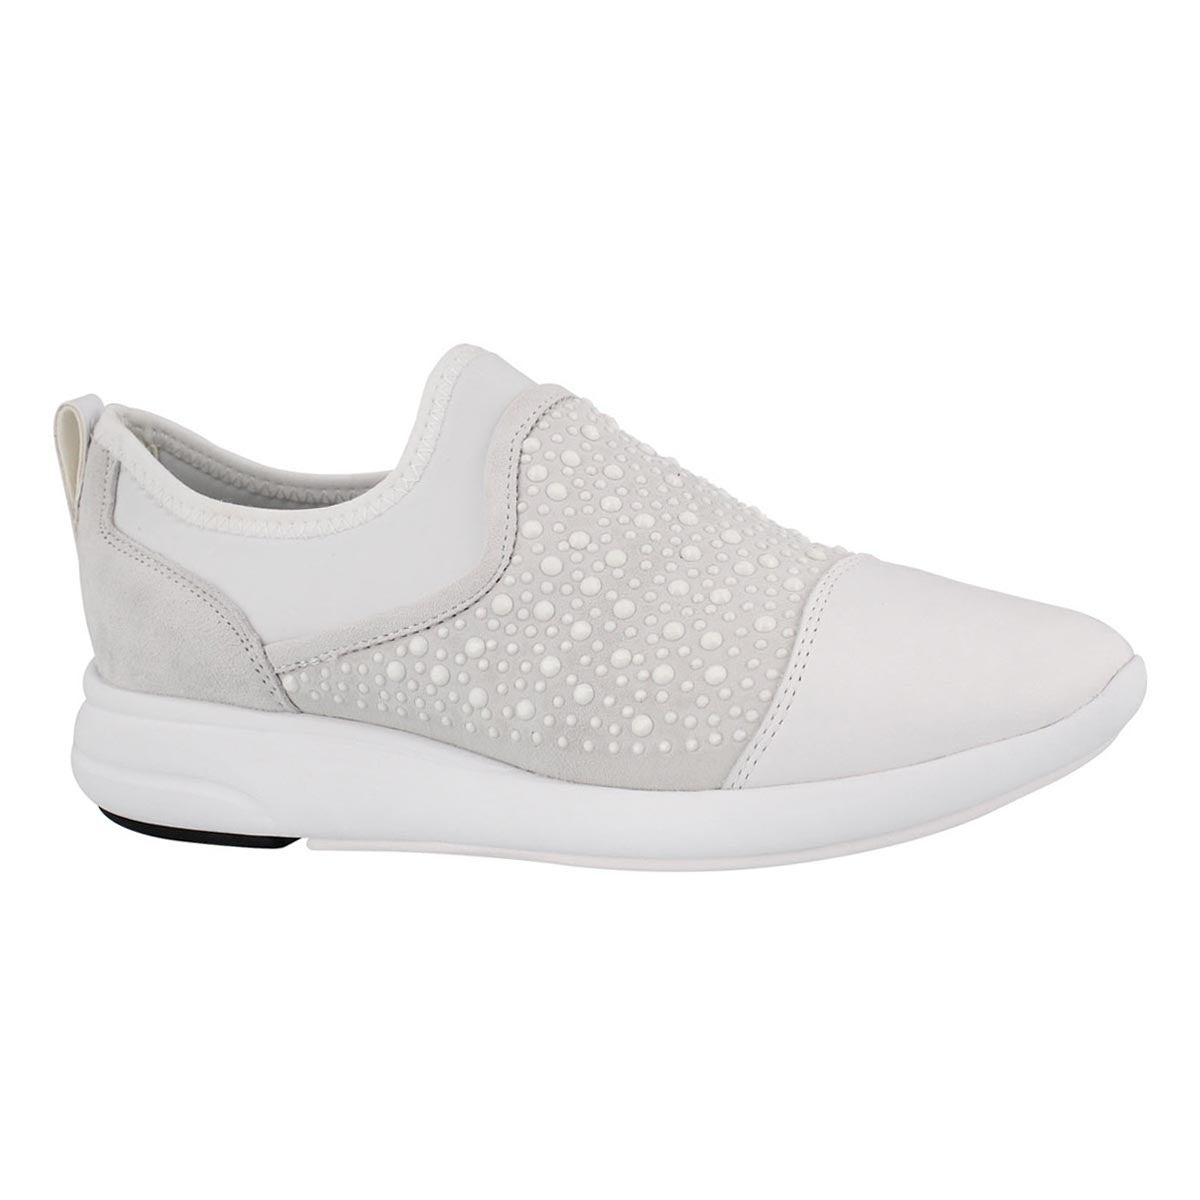 Women's OPHIRA off white slip on sneakers